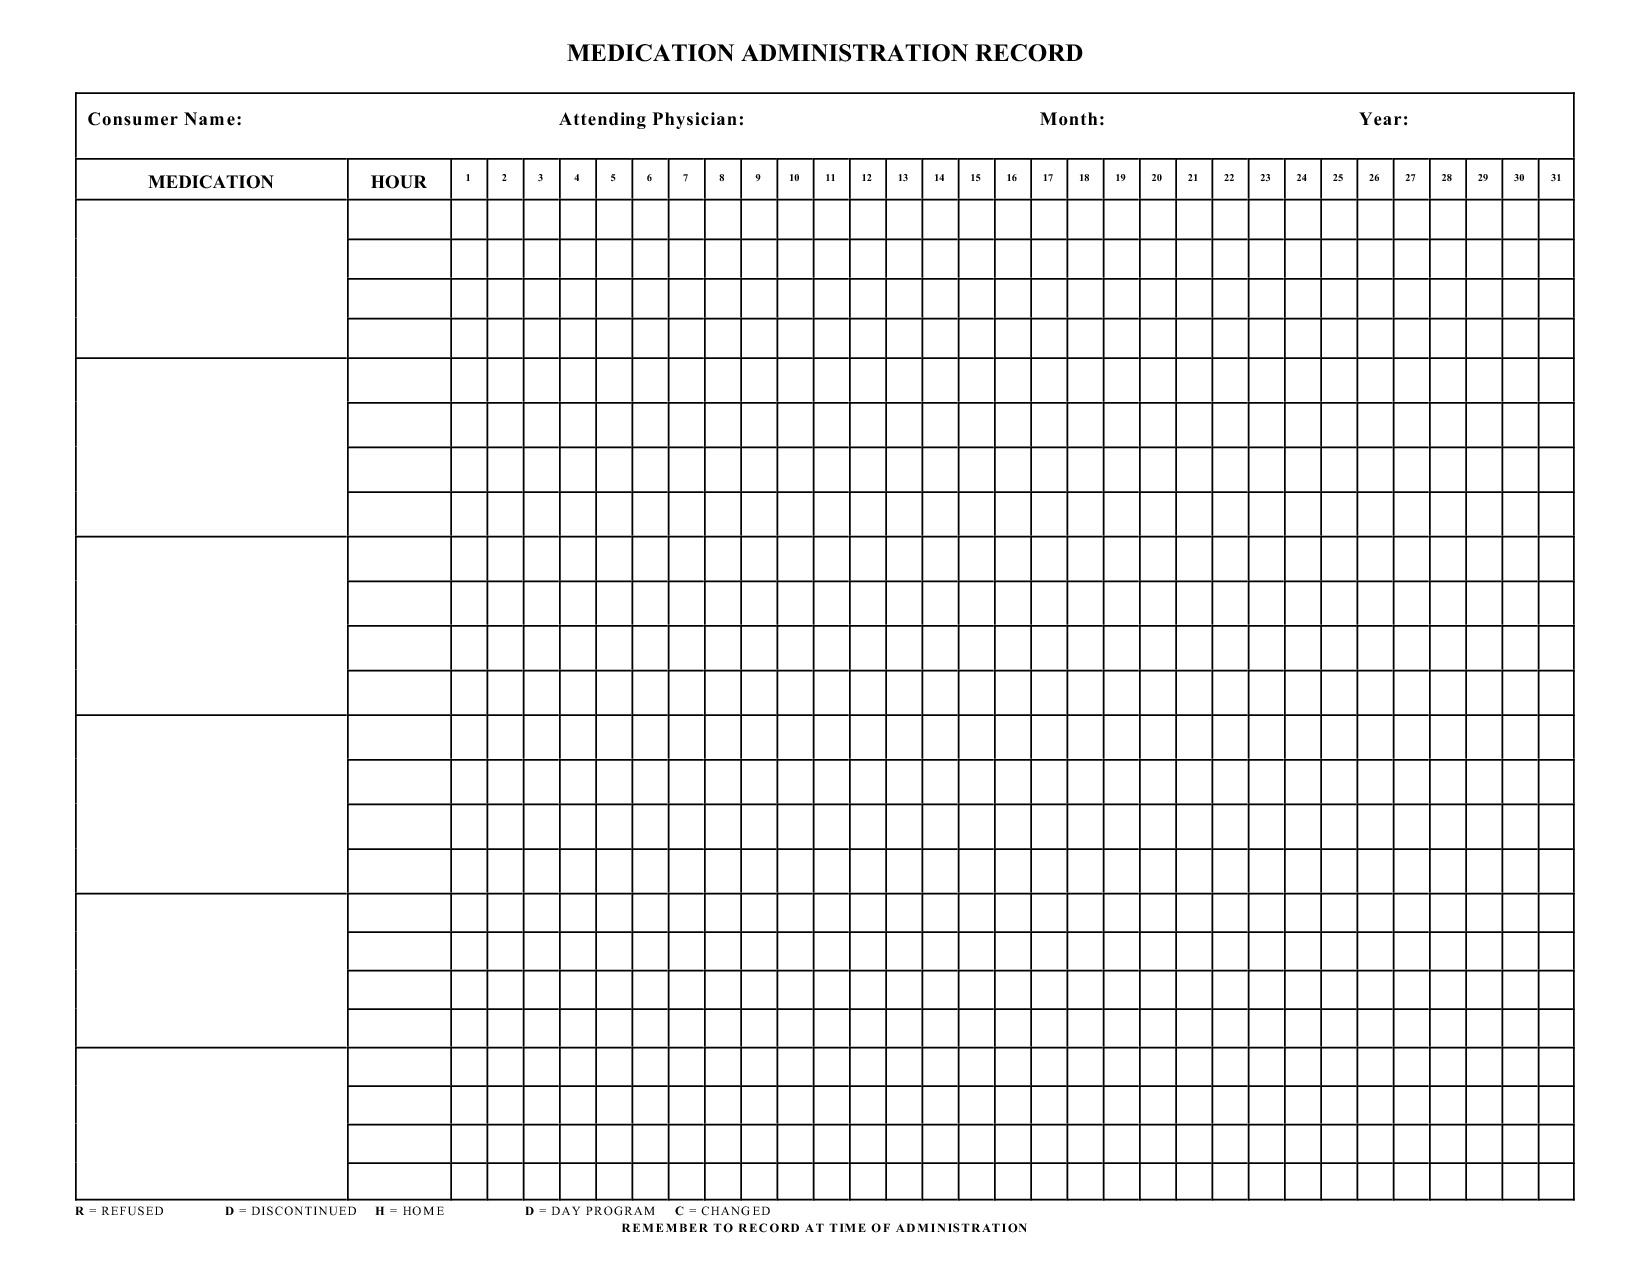 Free Medication Administration Record Template Excel For Medication Administration Record Template Excel Samples